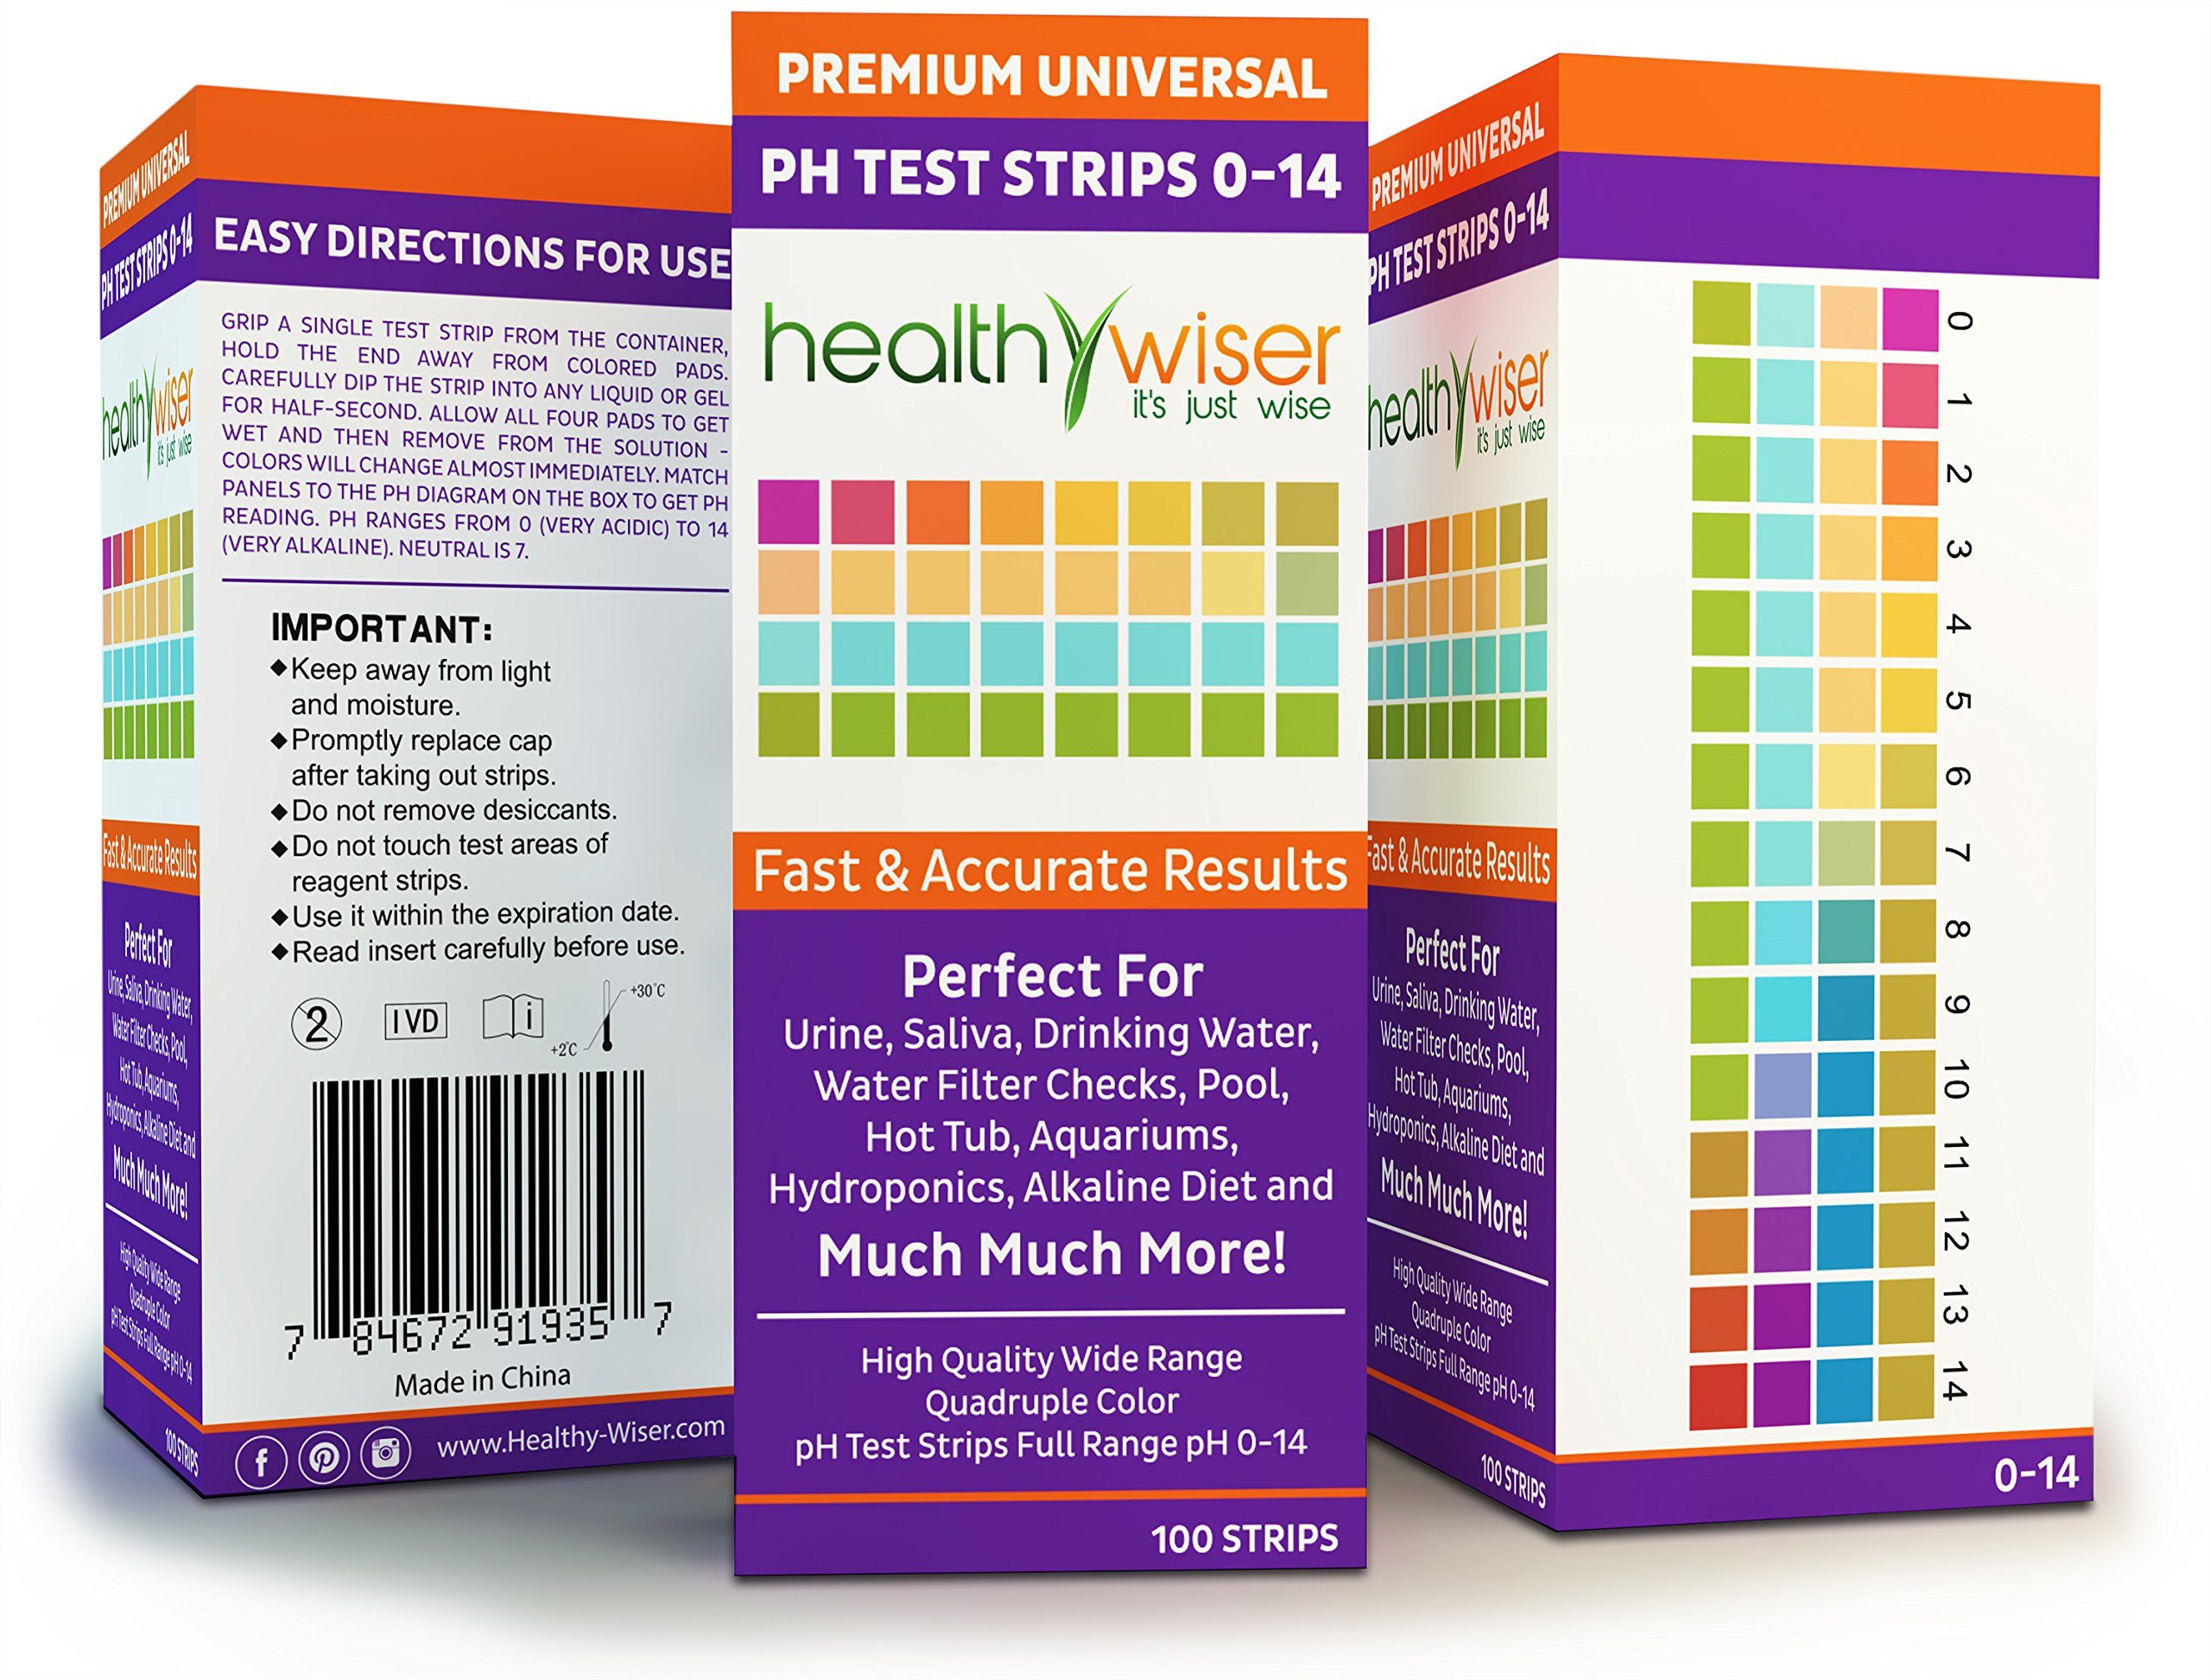 pH Test Strips 0-14, Universal Strips To Test Water Quality For Swimming Pools, Hot Tub, Hydroponics, Aquarium, Kombucha, Household Drinking Water, Soil, Urine & Saliva, Alkaline & Diabetic Diet 100ct by HealthyWiser (Image #4)